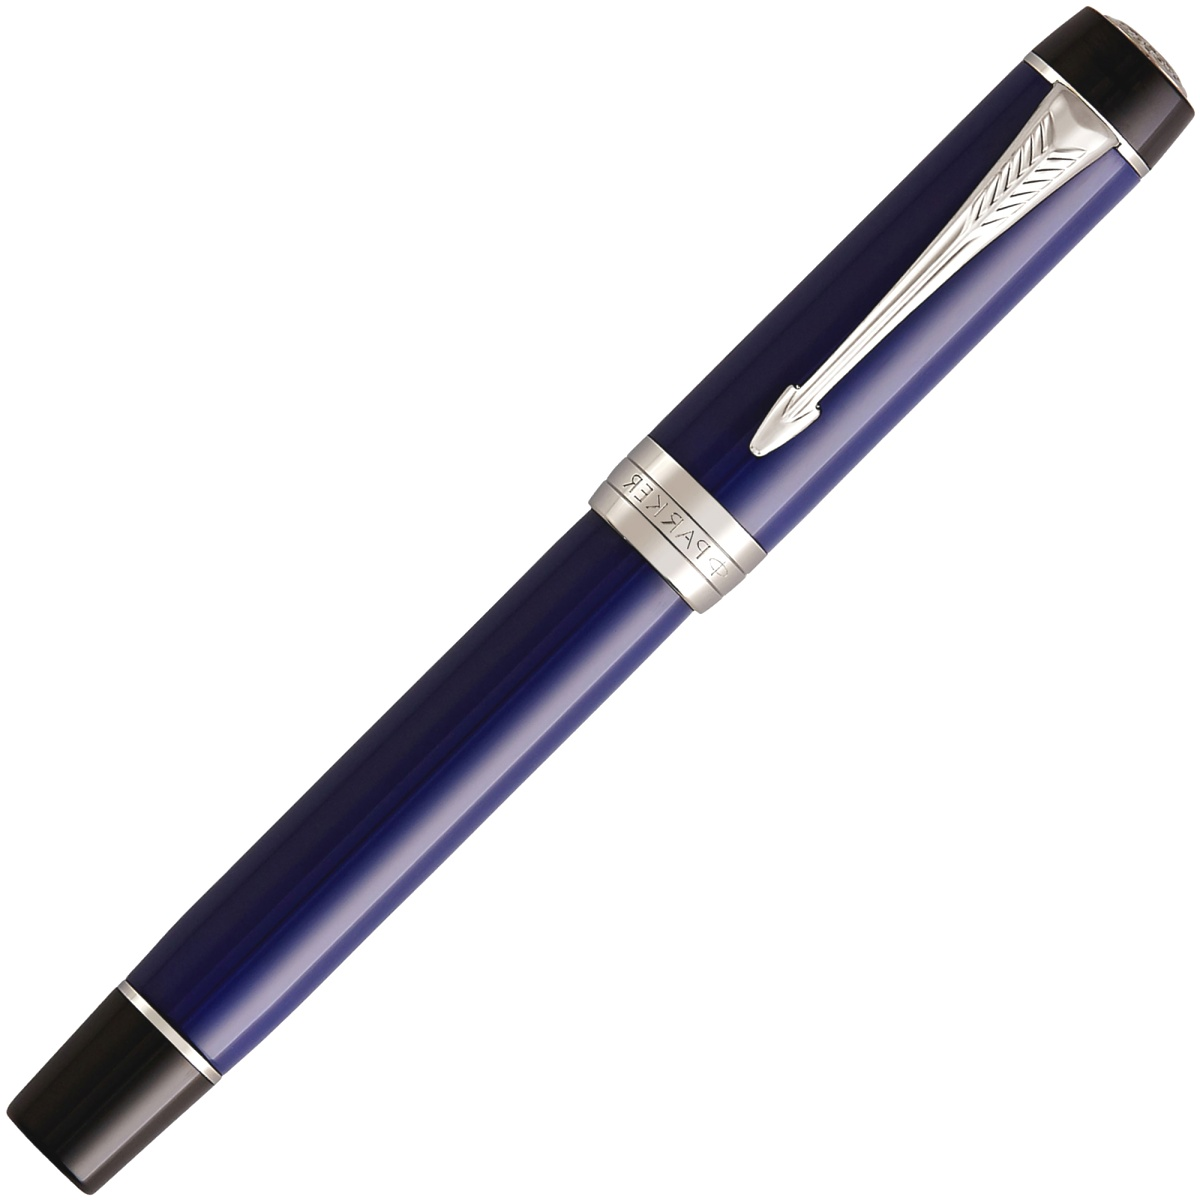 Ручка-роллер Parker Duofold Classic International T74, Blue and Black CT, фото 2